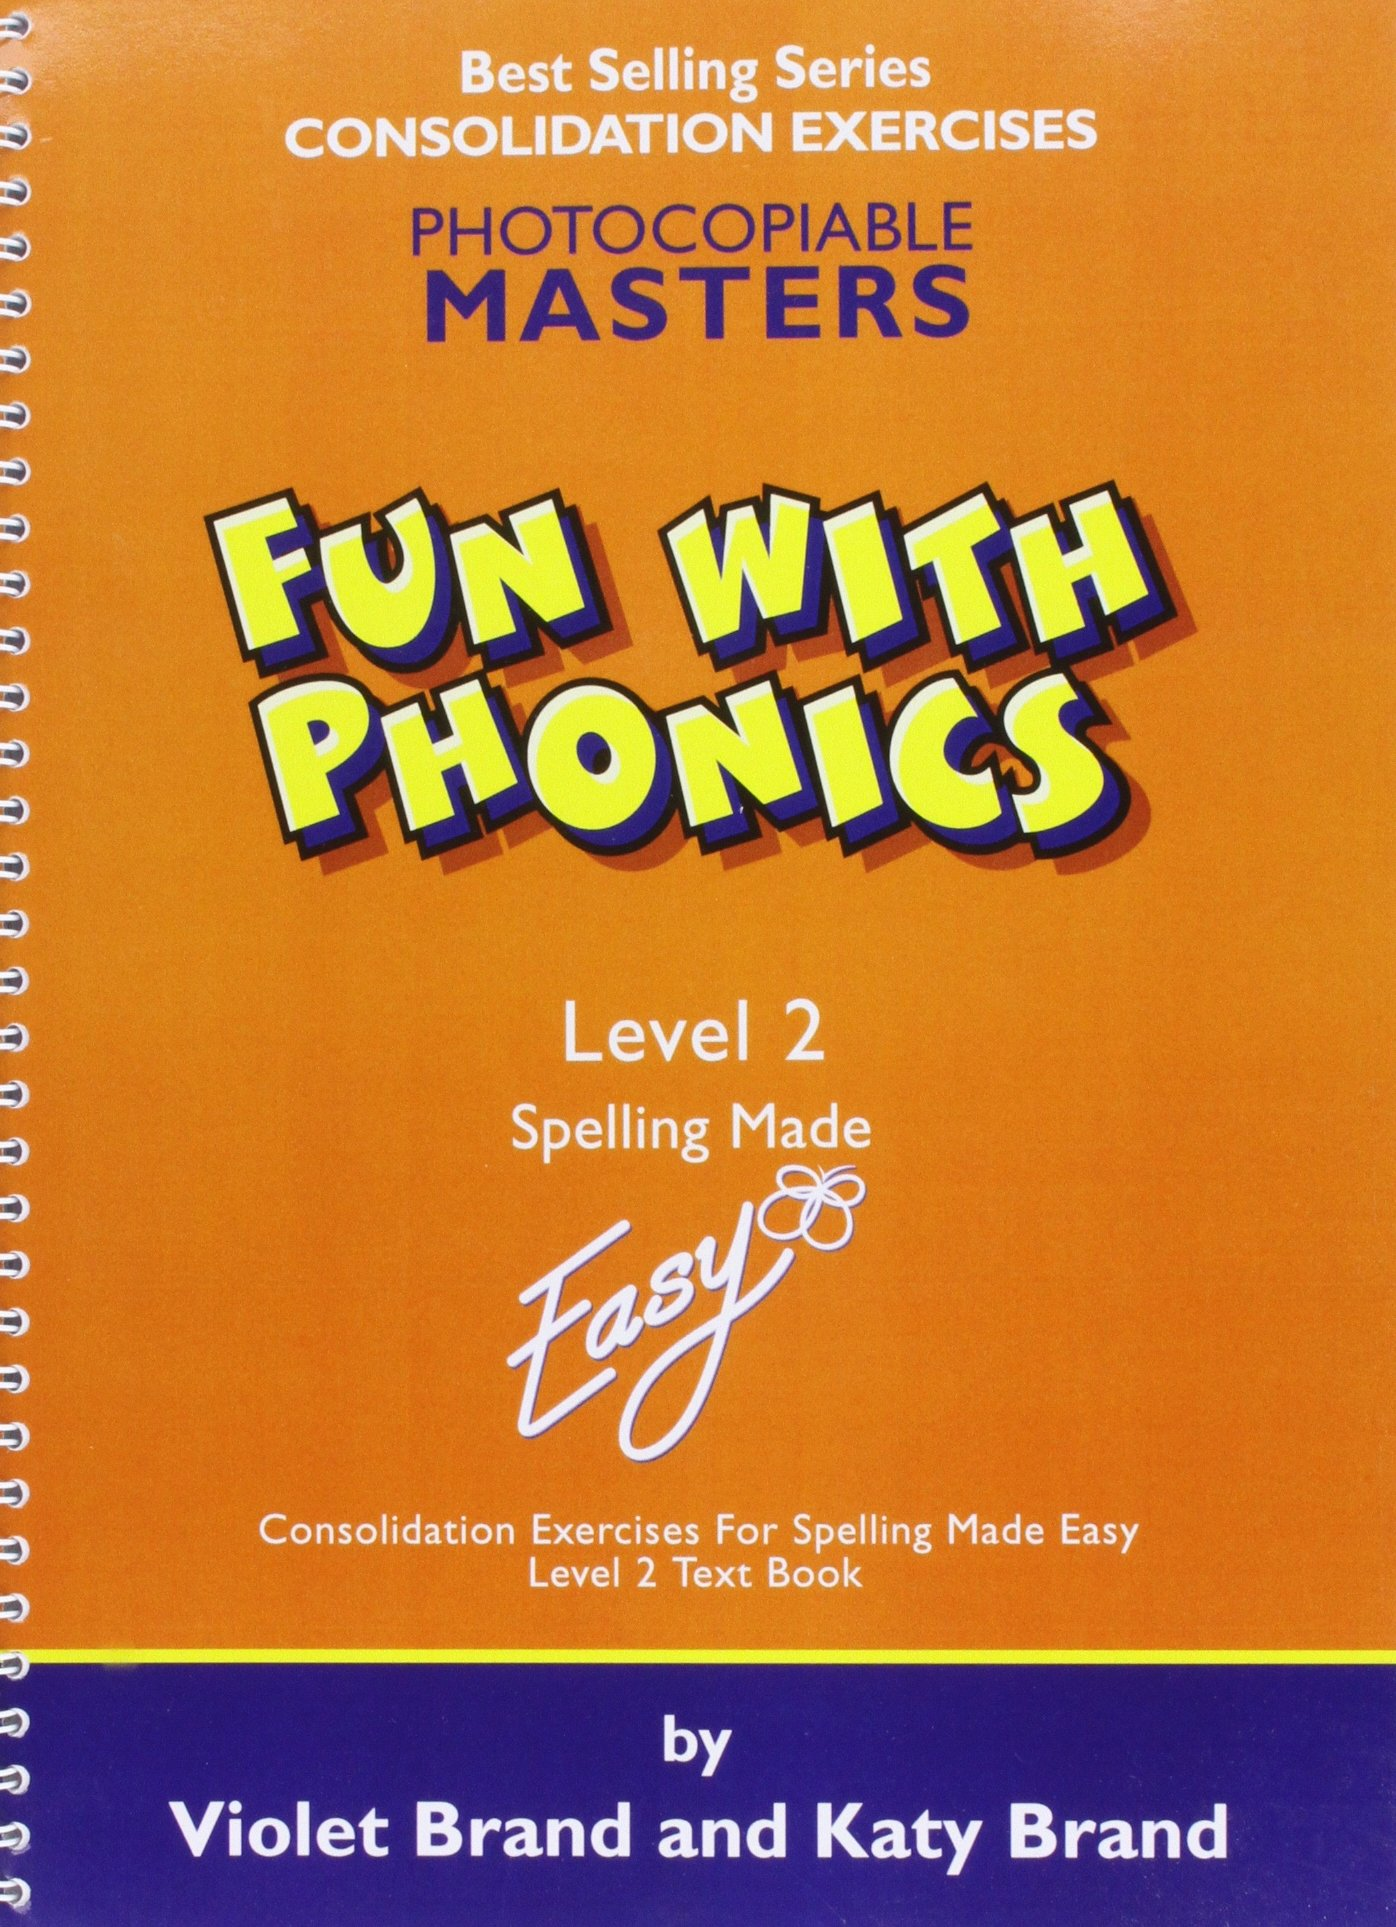 Fun With Phonics Worksheets Level 2 Spelling Made Easy Amazon Co Uk Brand Violet Brand Katy 9781904421160 Books